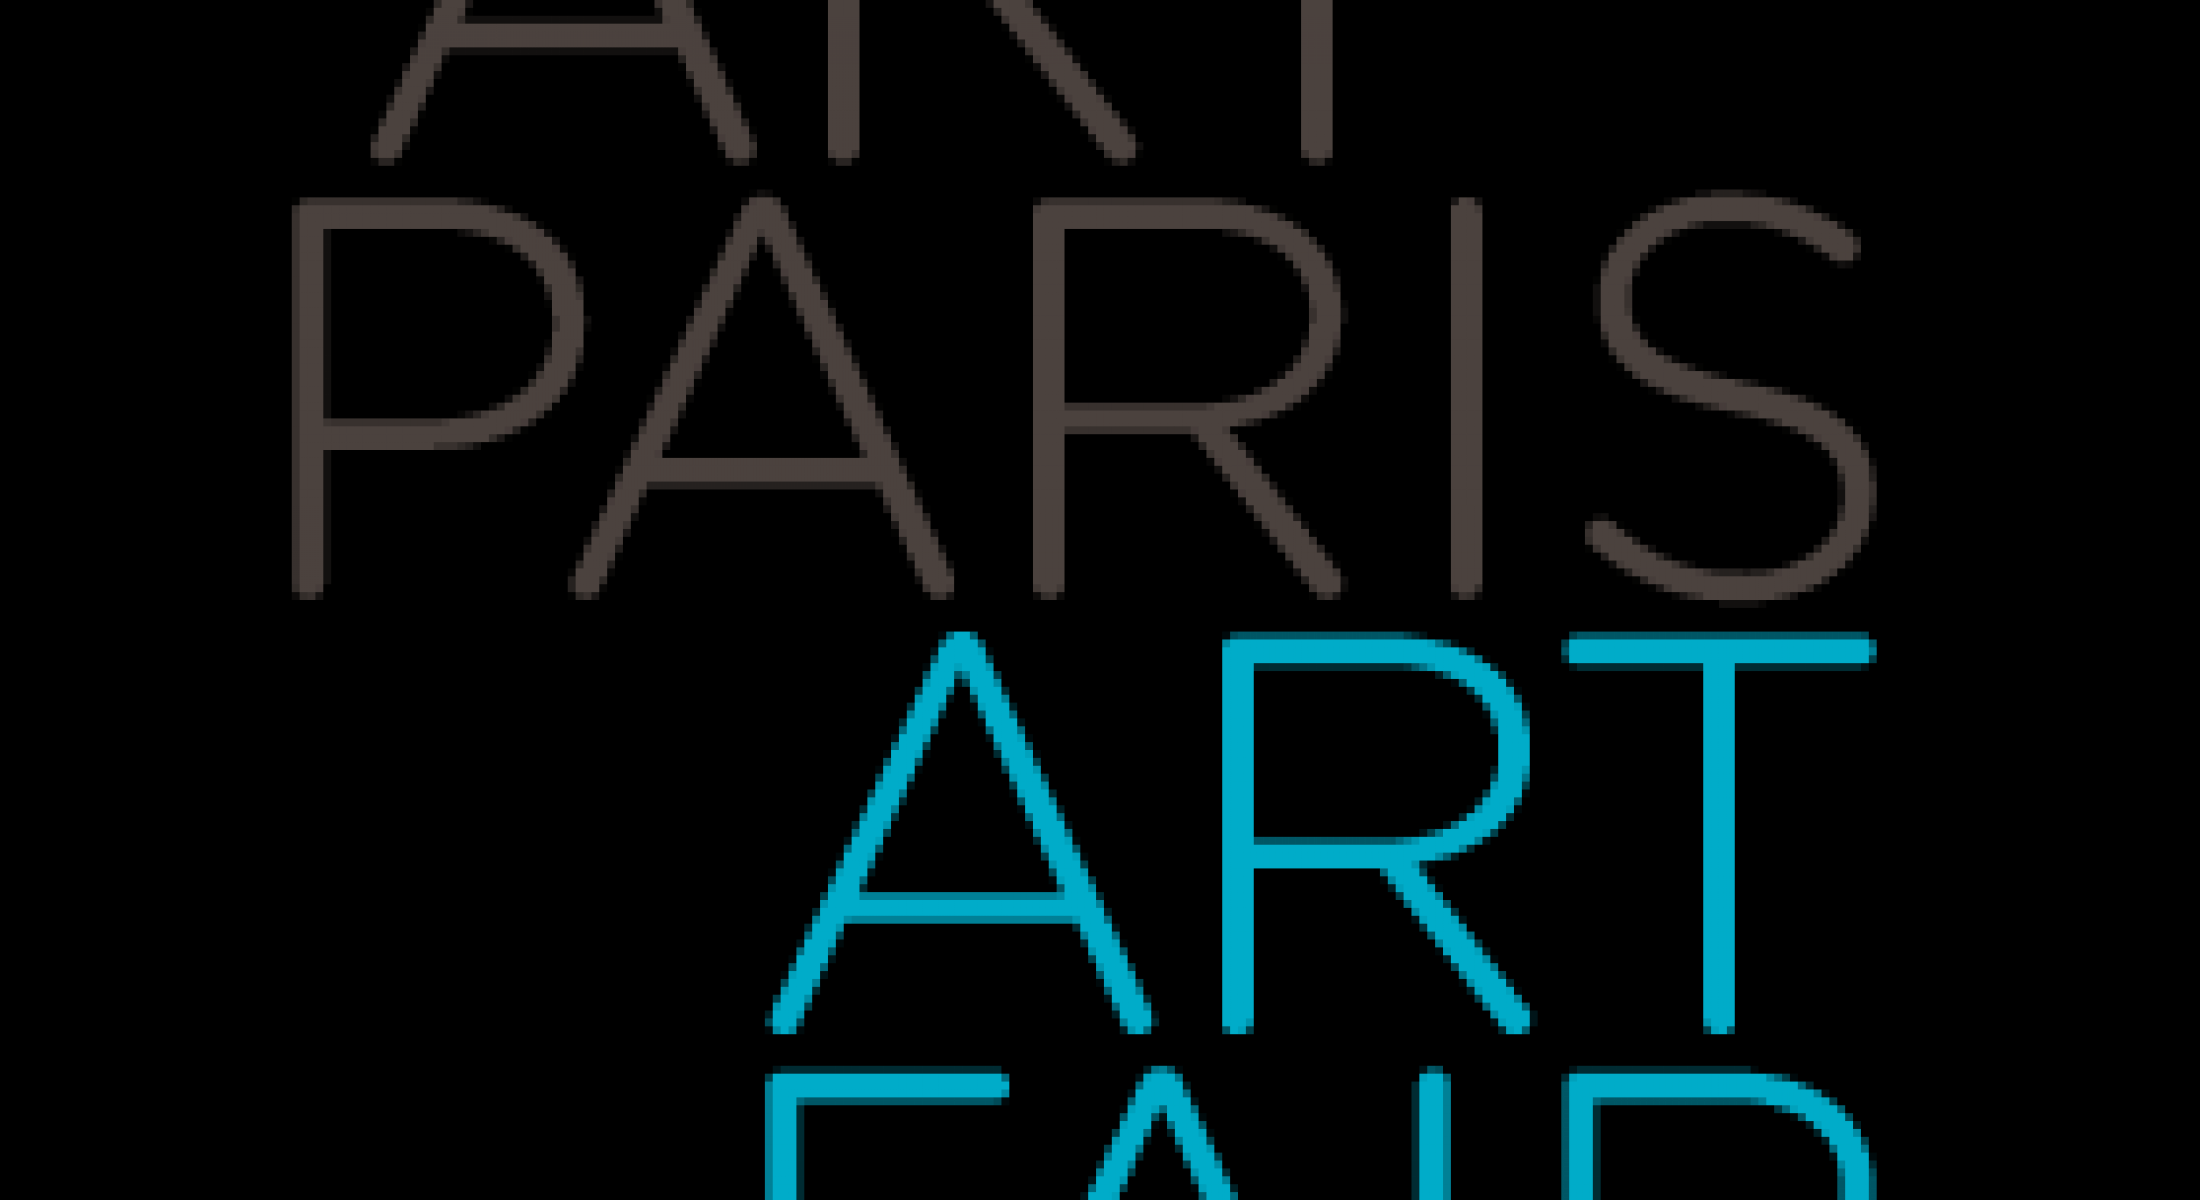 Antonio Segui, Estampes